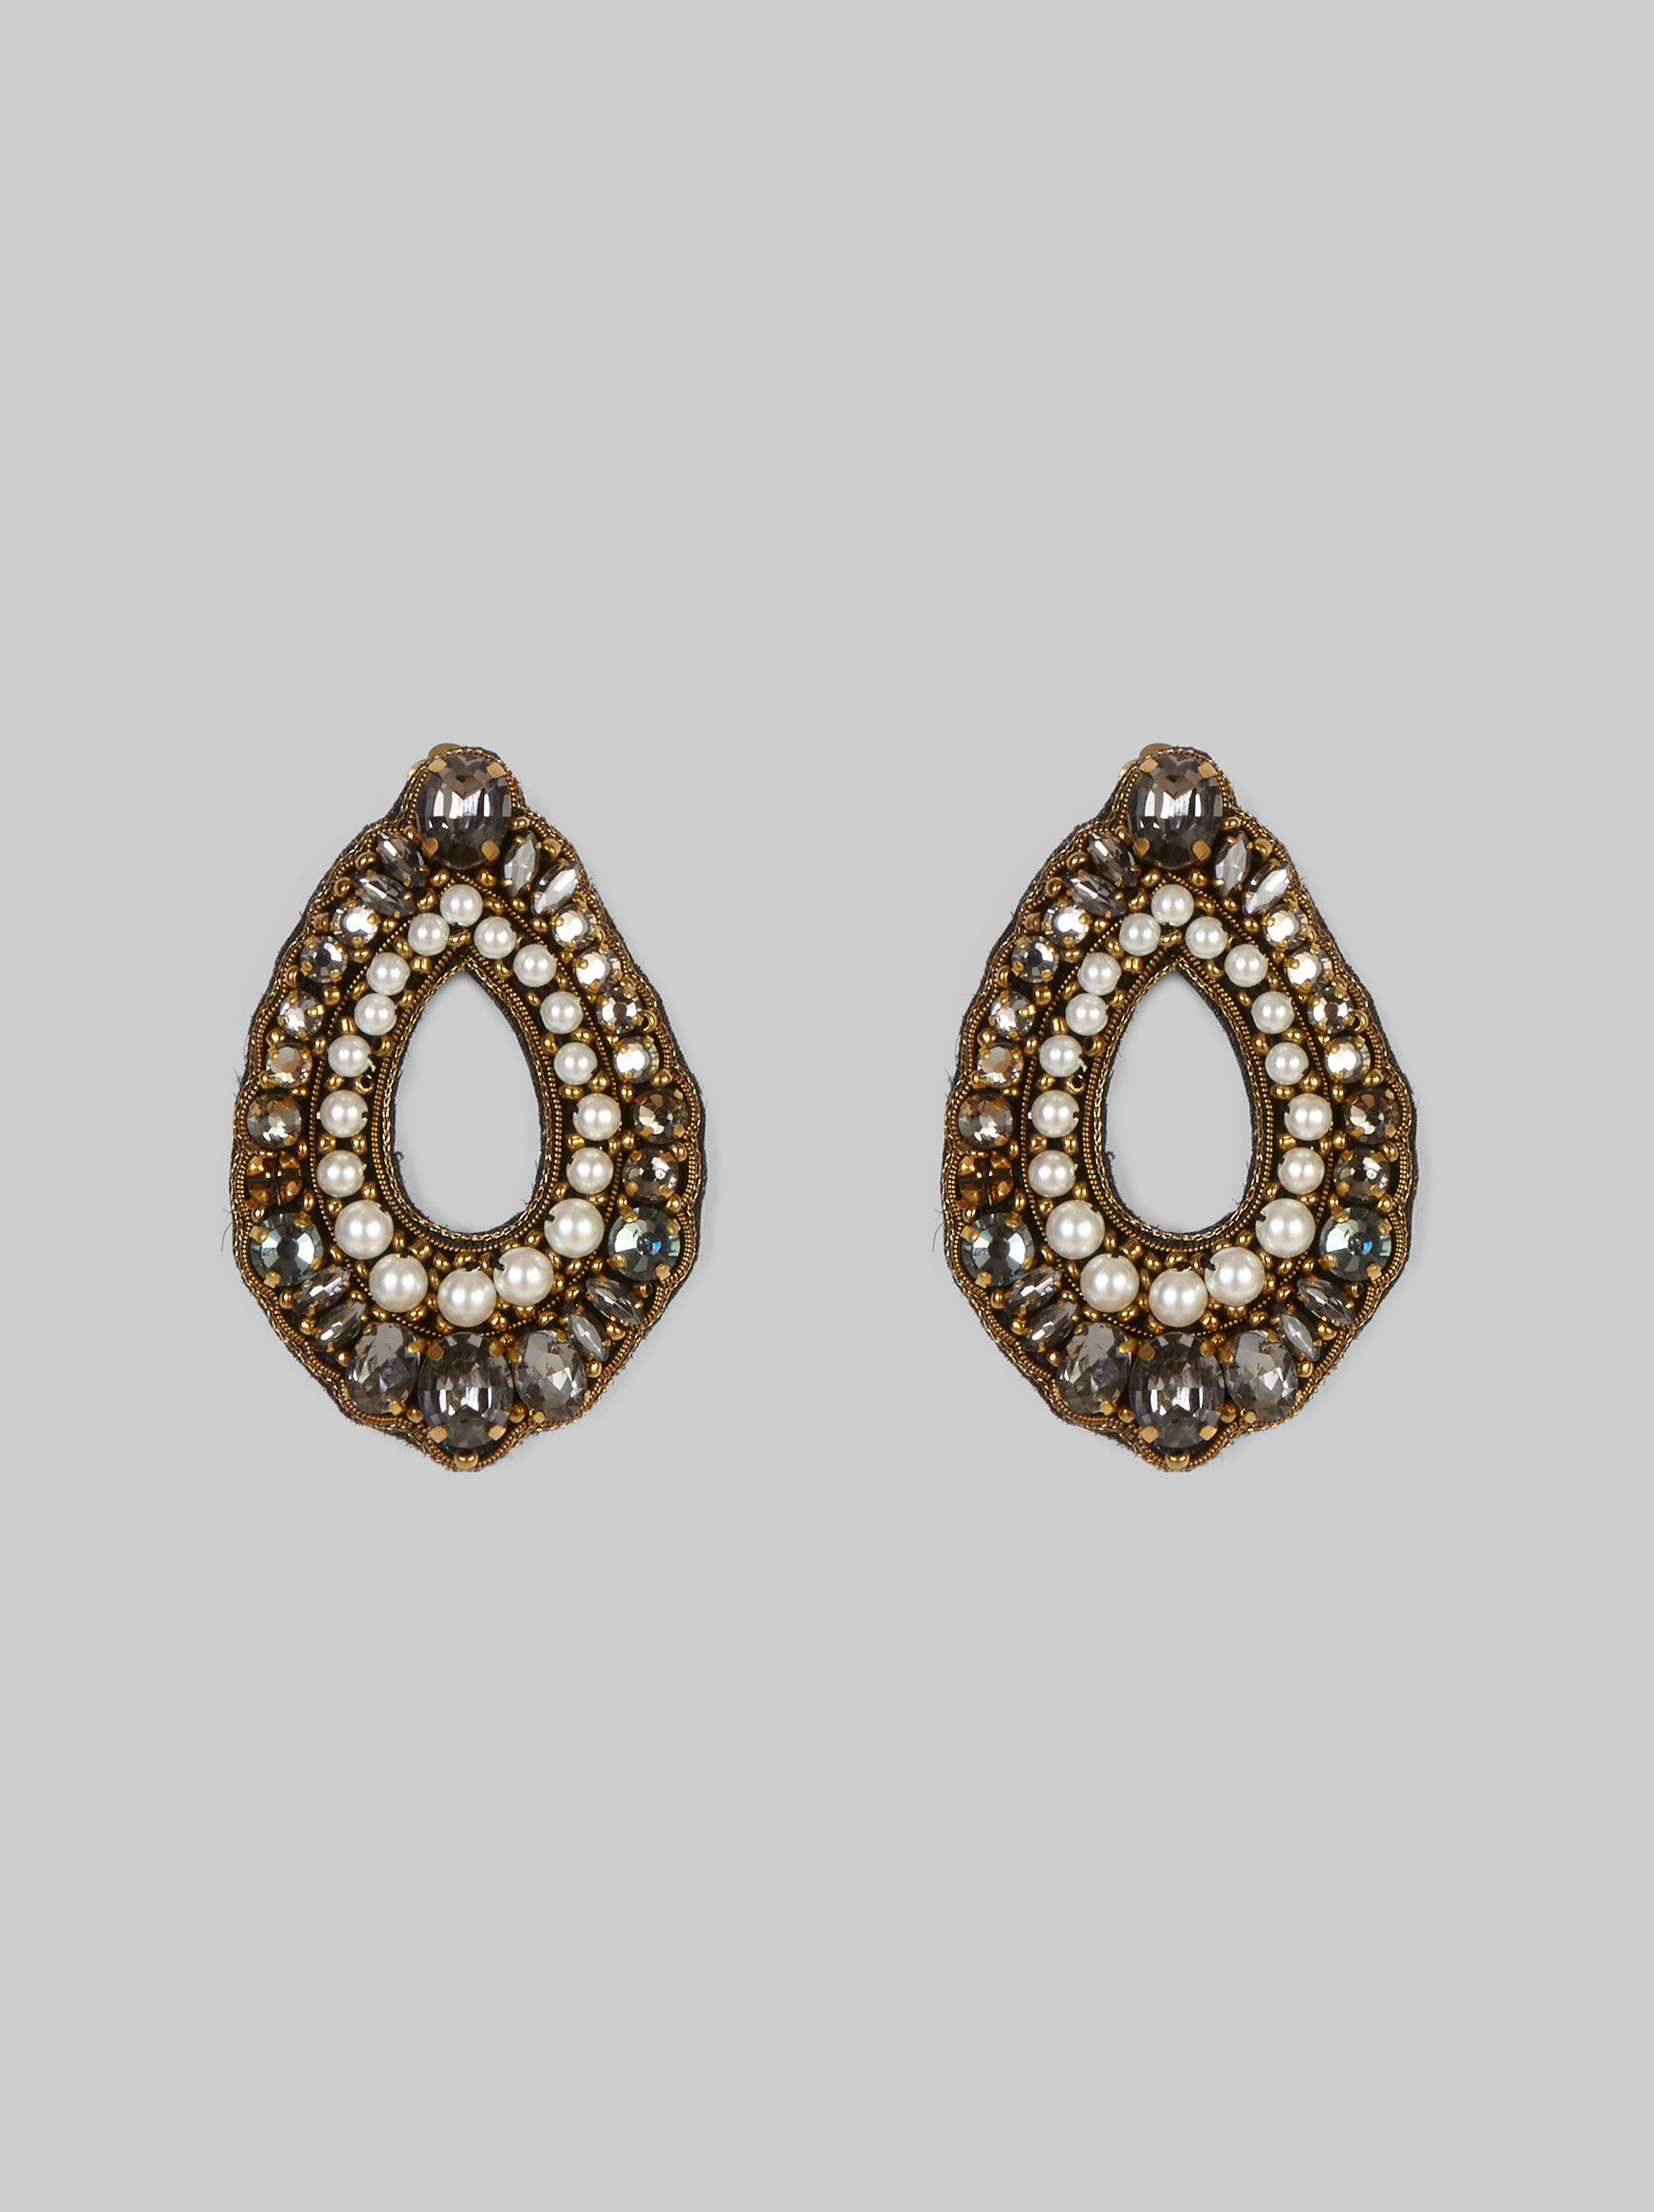 EARRINGS WITH PEARLS AND RHINESTONES